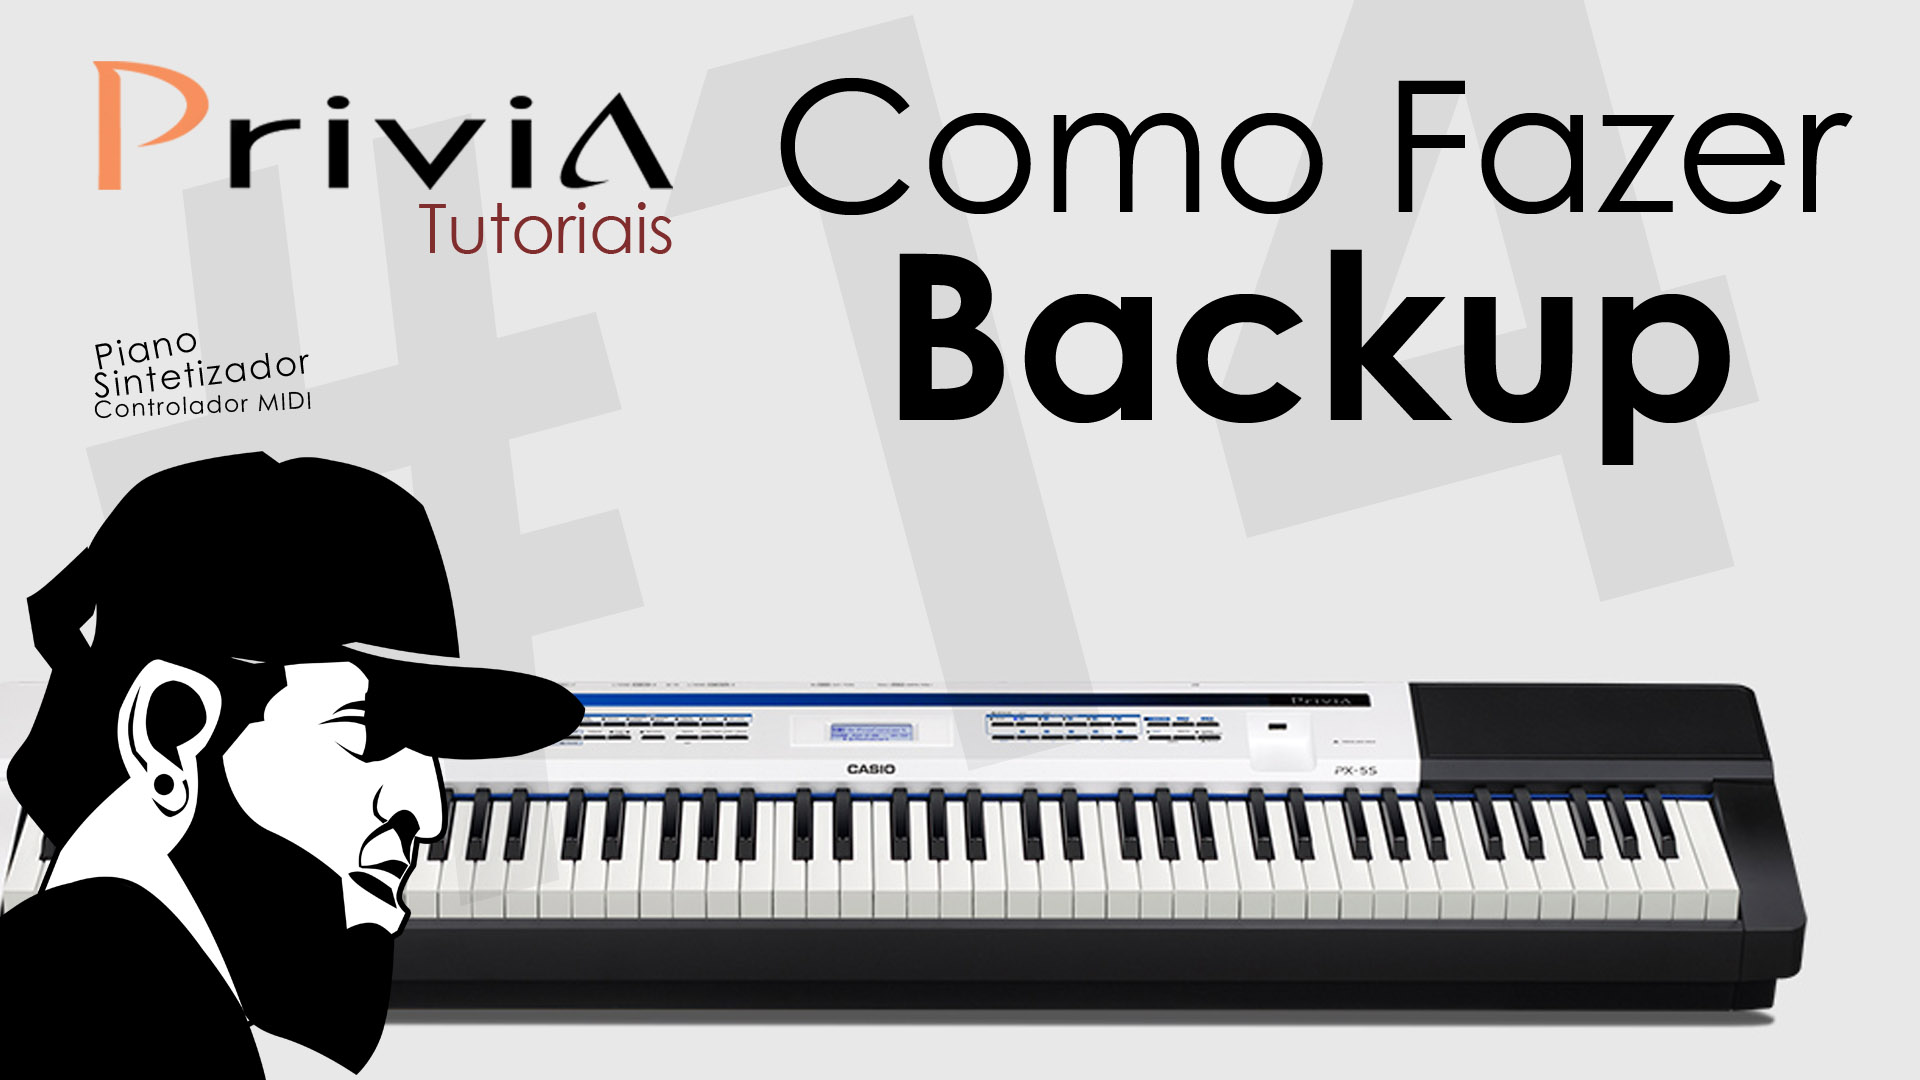 Como Fazer Backup do Casio Privia PX-5S?